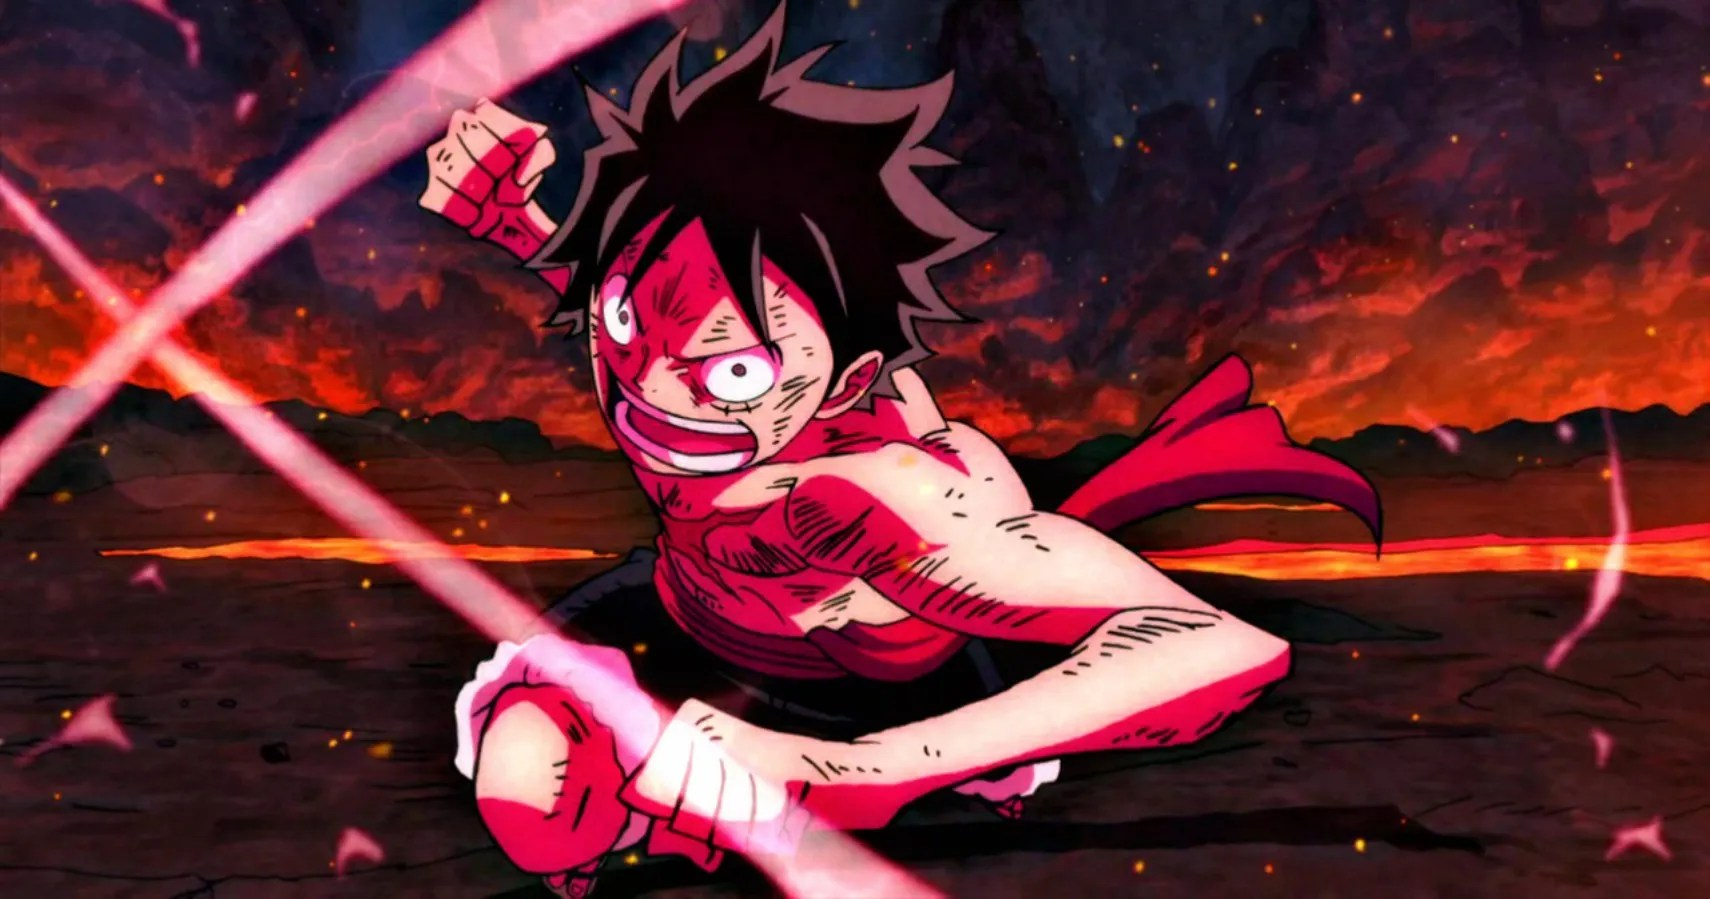 Shanks used observation haki to find luffy and saw that he had just rescued ace from the scaffold. Marineford Luffy Haki